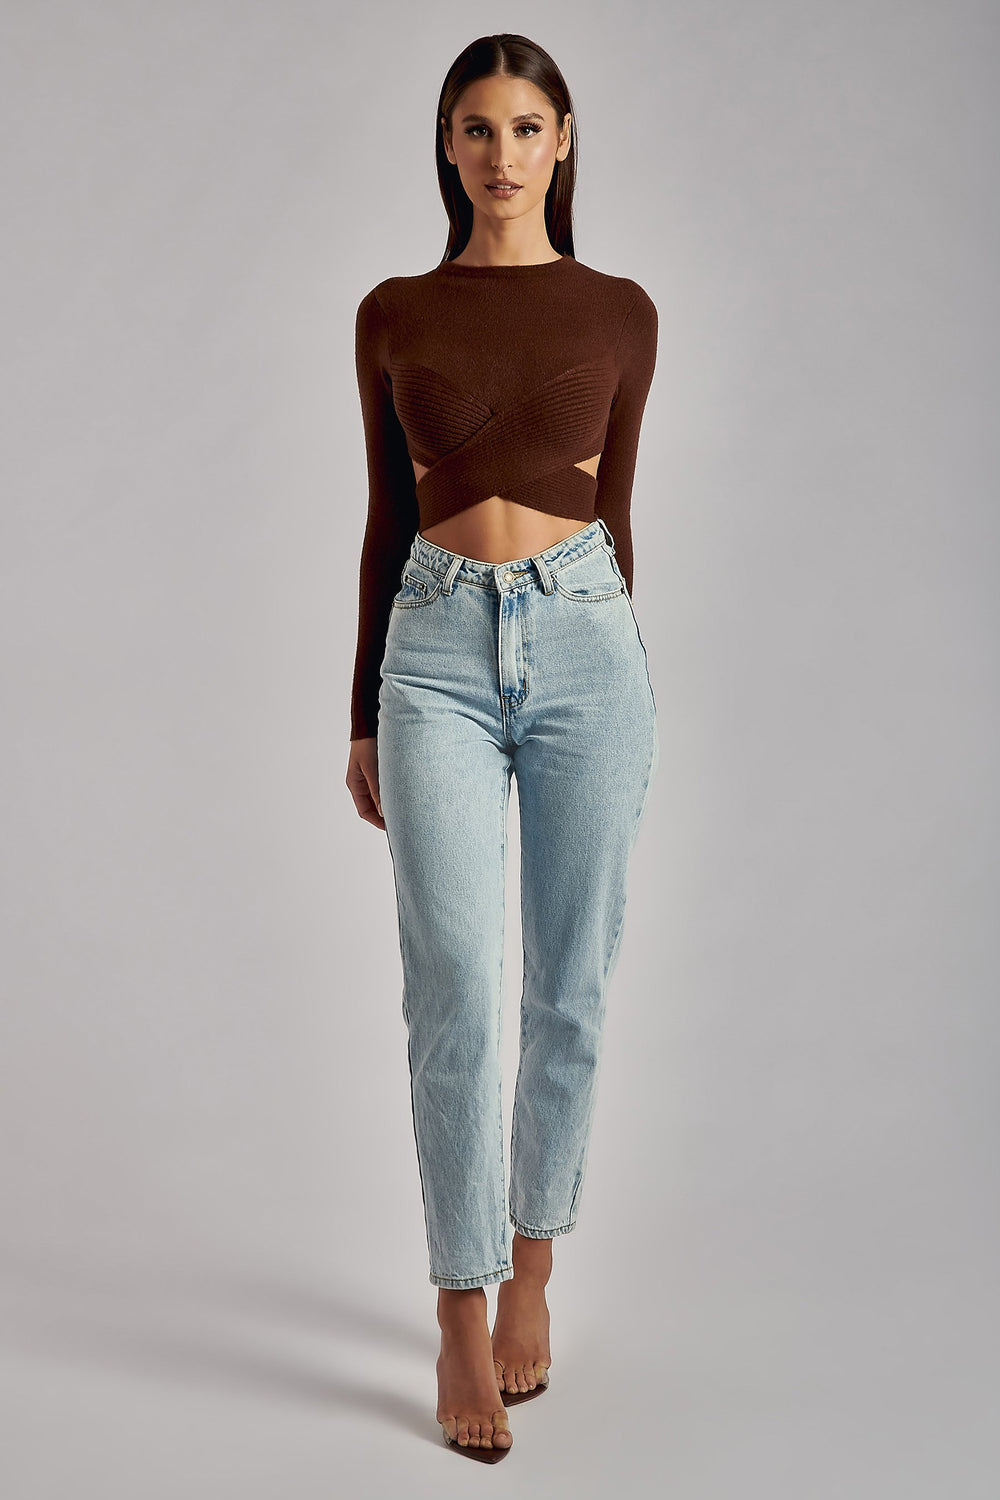 Maliyah Cross Wrap Detail Knitted Crop Top - Chocolate